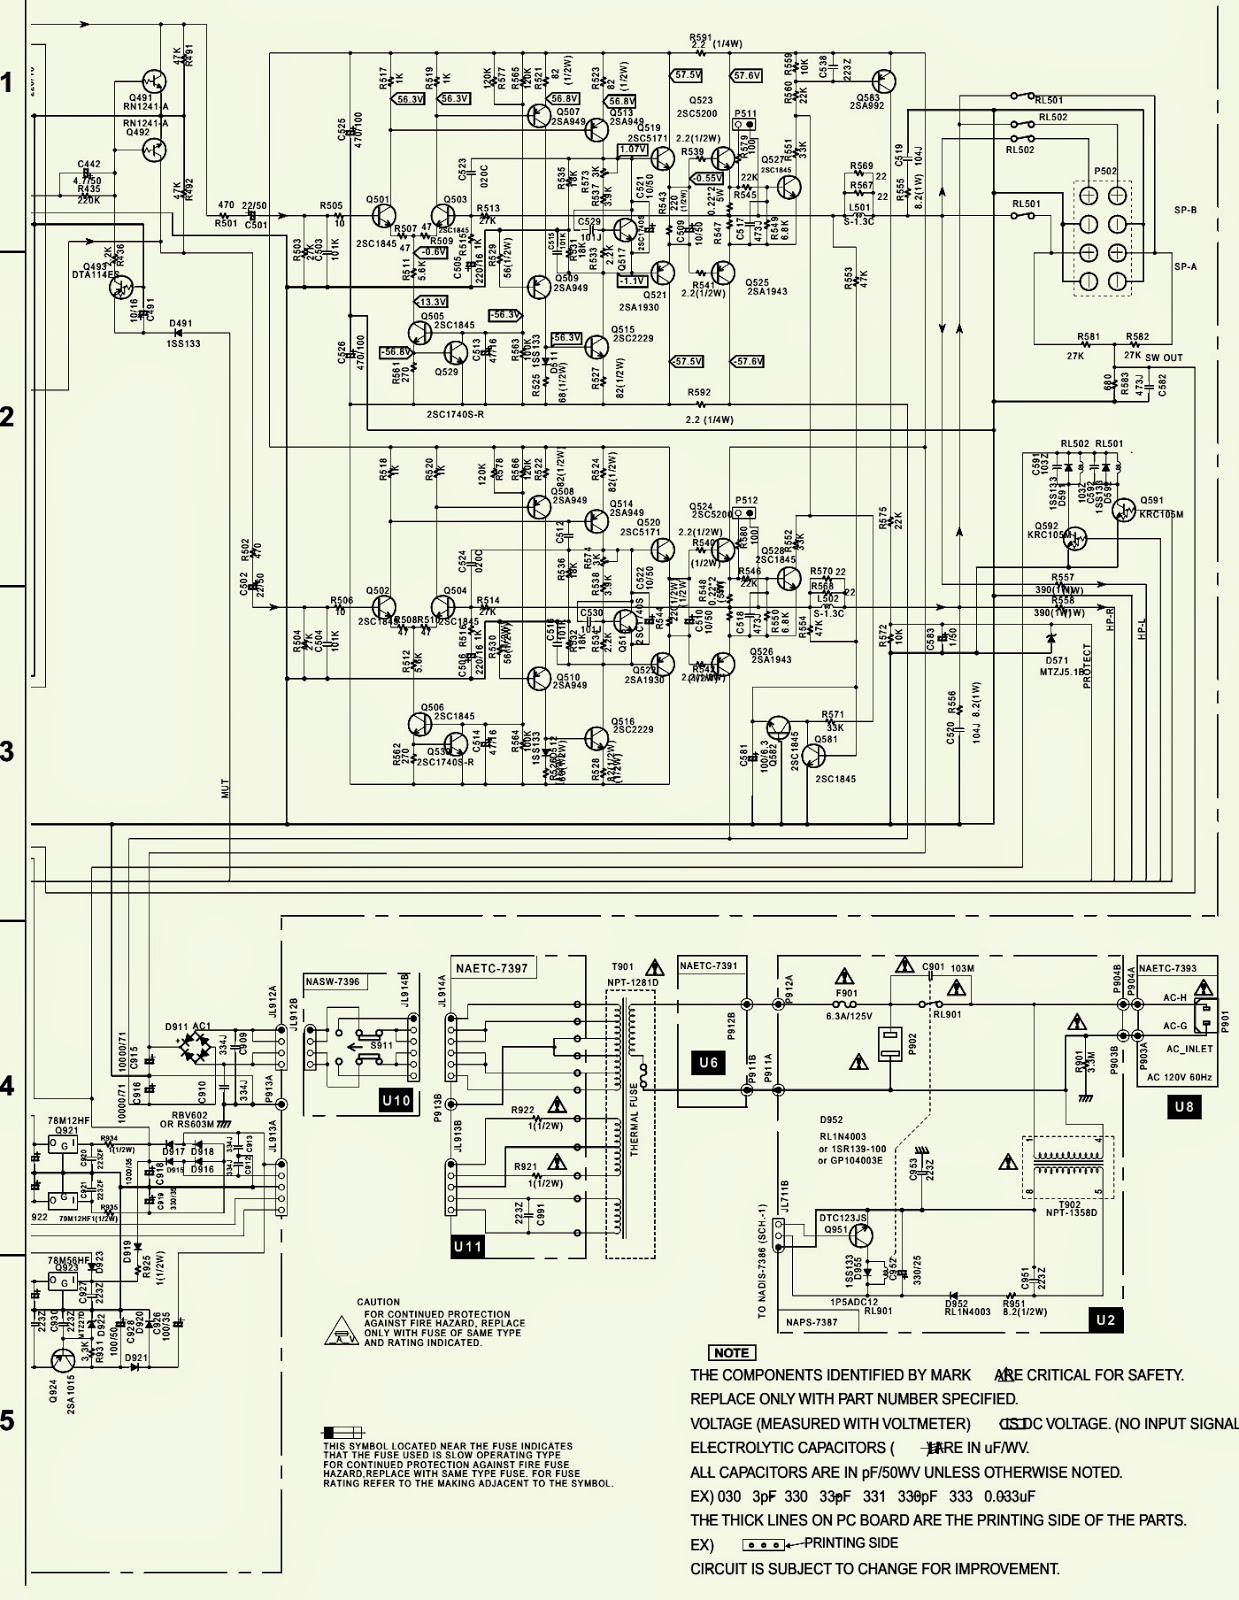 small resolution of integra dtm5 3 schematic circuit diagram 2sc5200 npn 2sa1943 pnp outout transistors electro help